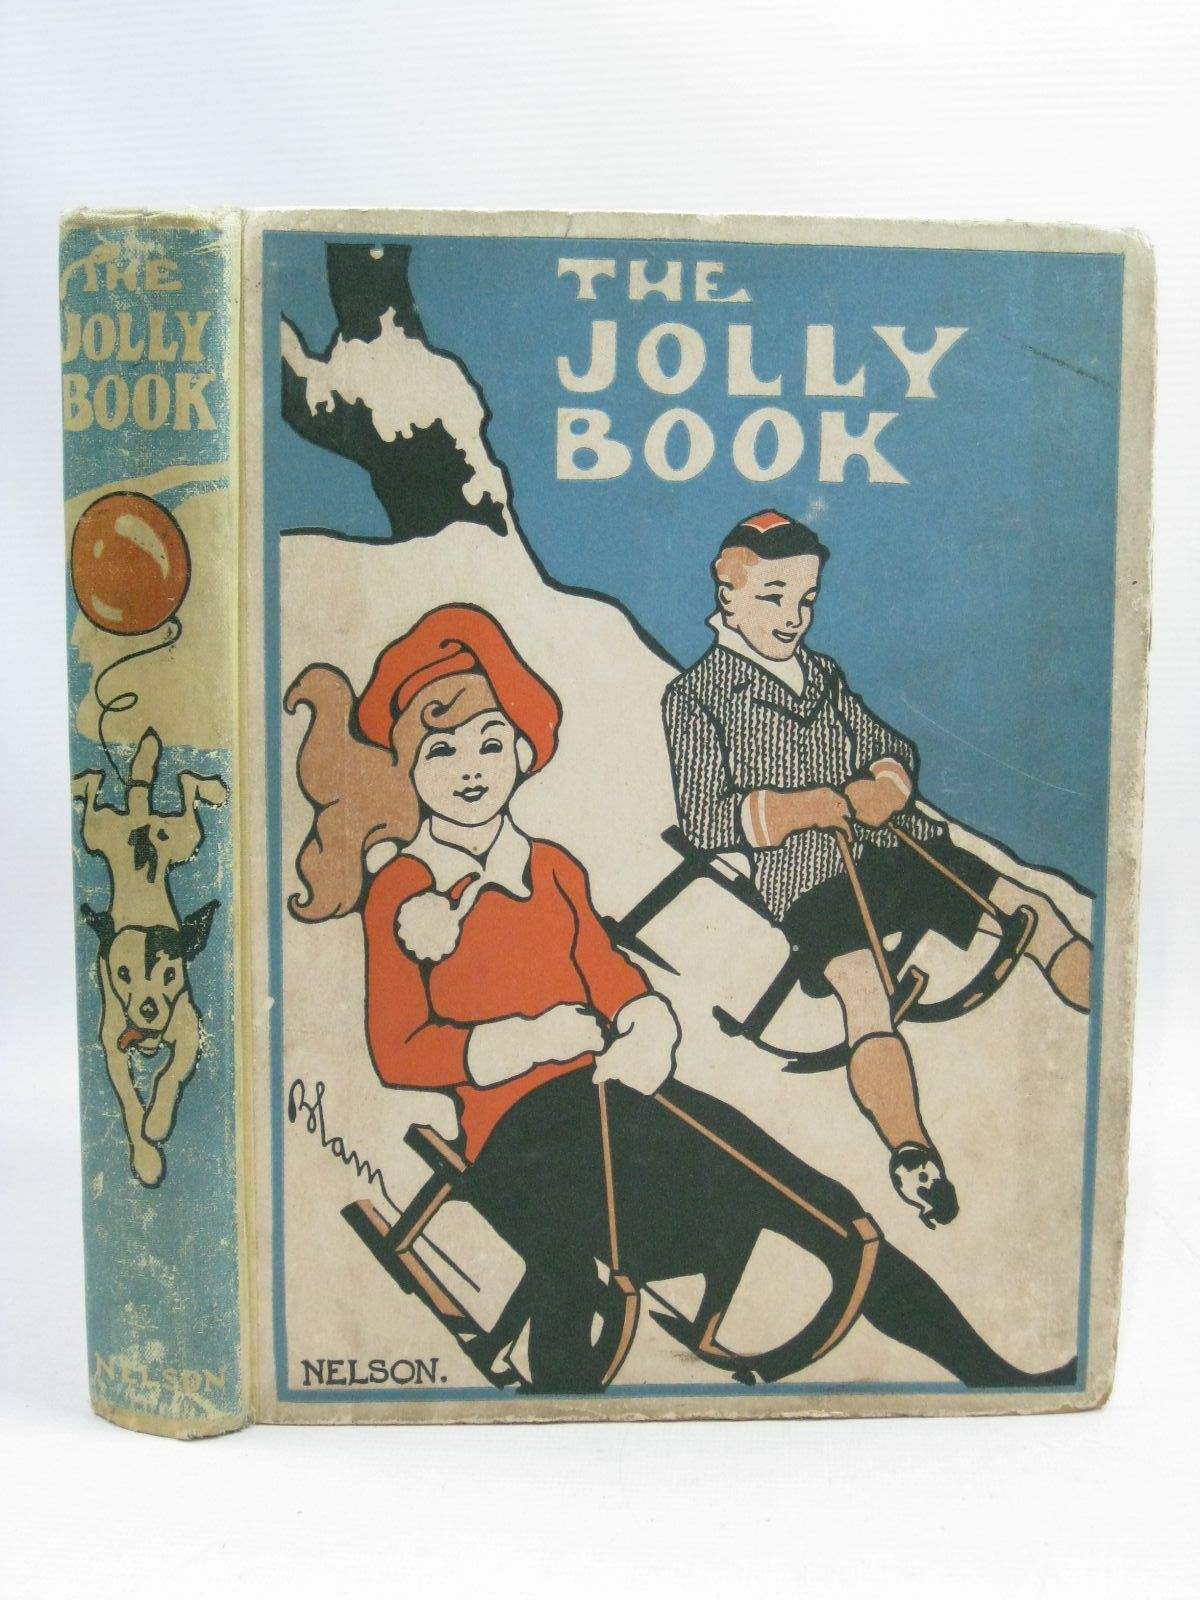 Photo of THE JOLLY BOOK - TWELFTH YEAR written by Chisholm, Edwin Shrewsbury, Mary Owsley, Sibyl B. Avery, Harold et al, illustrated by Blampied, Edmund Earnshaw, Harold Wood, Lawson Fraser, Peter Studdy, G.E. et al., published by Thomas Nelson and Sons Ltd. (STOCK CODE: 1505449)  for sale by Stella & Rose's Books